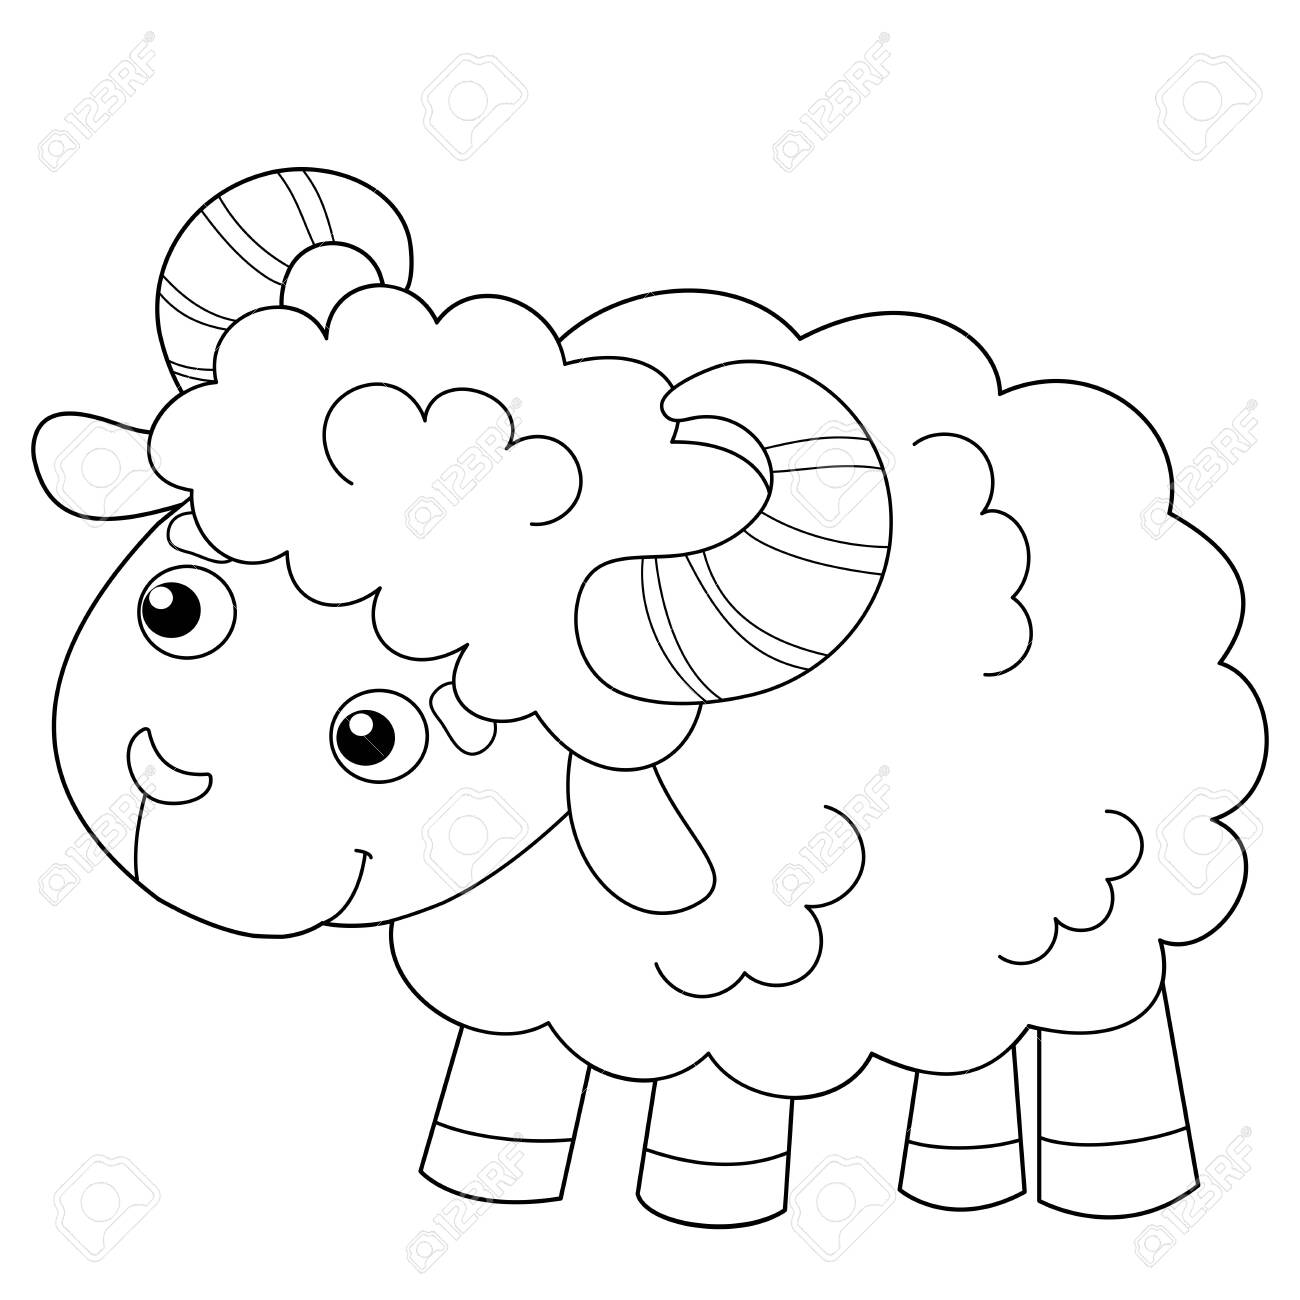 - Coloring Page Outline Of Cartoon Sheep. Farm Animals. Coloring